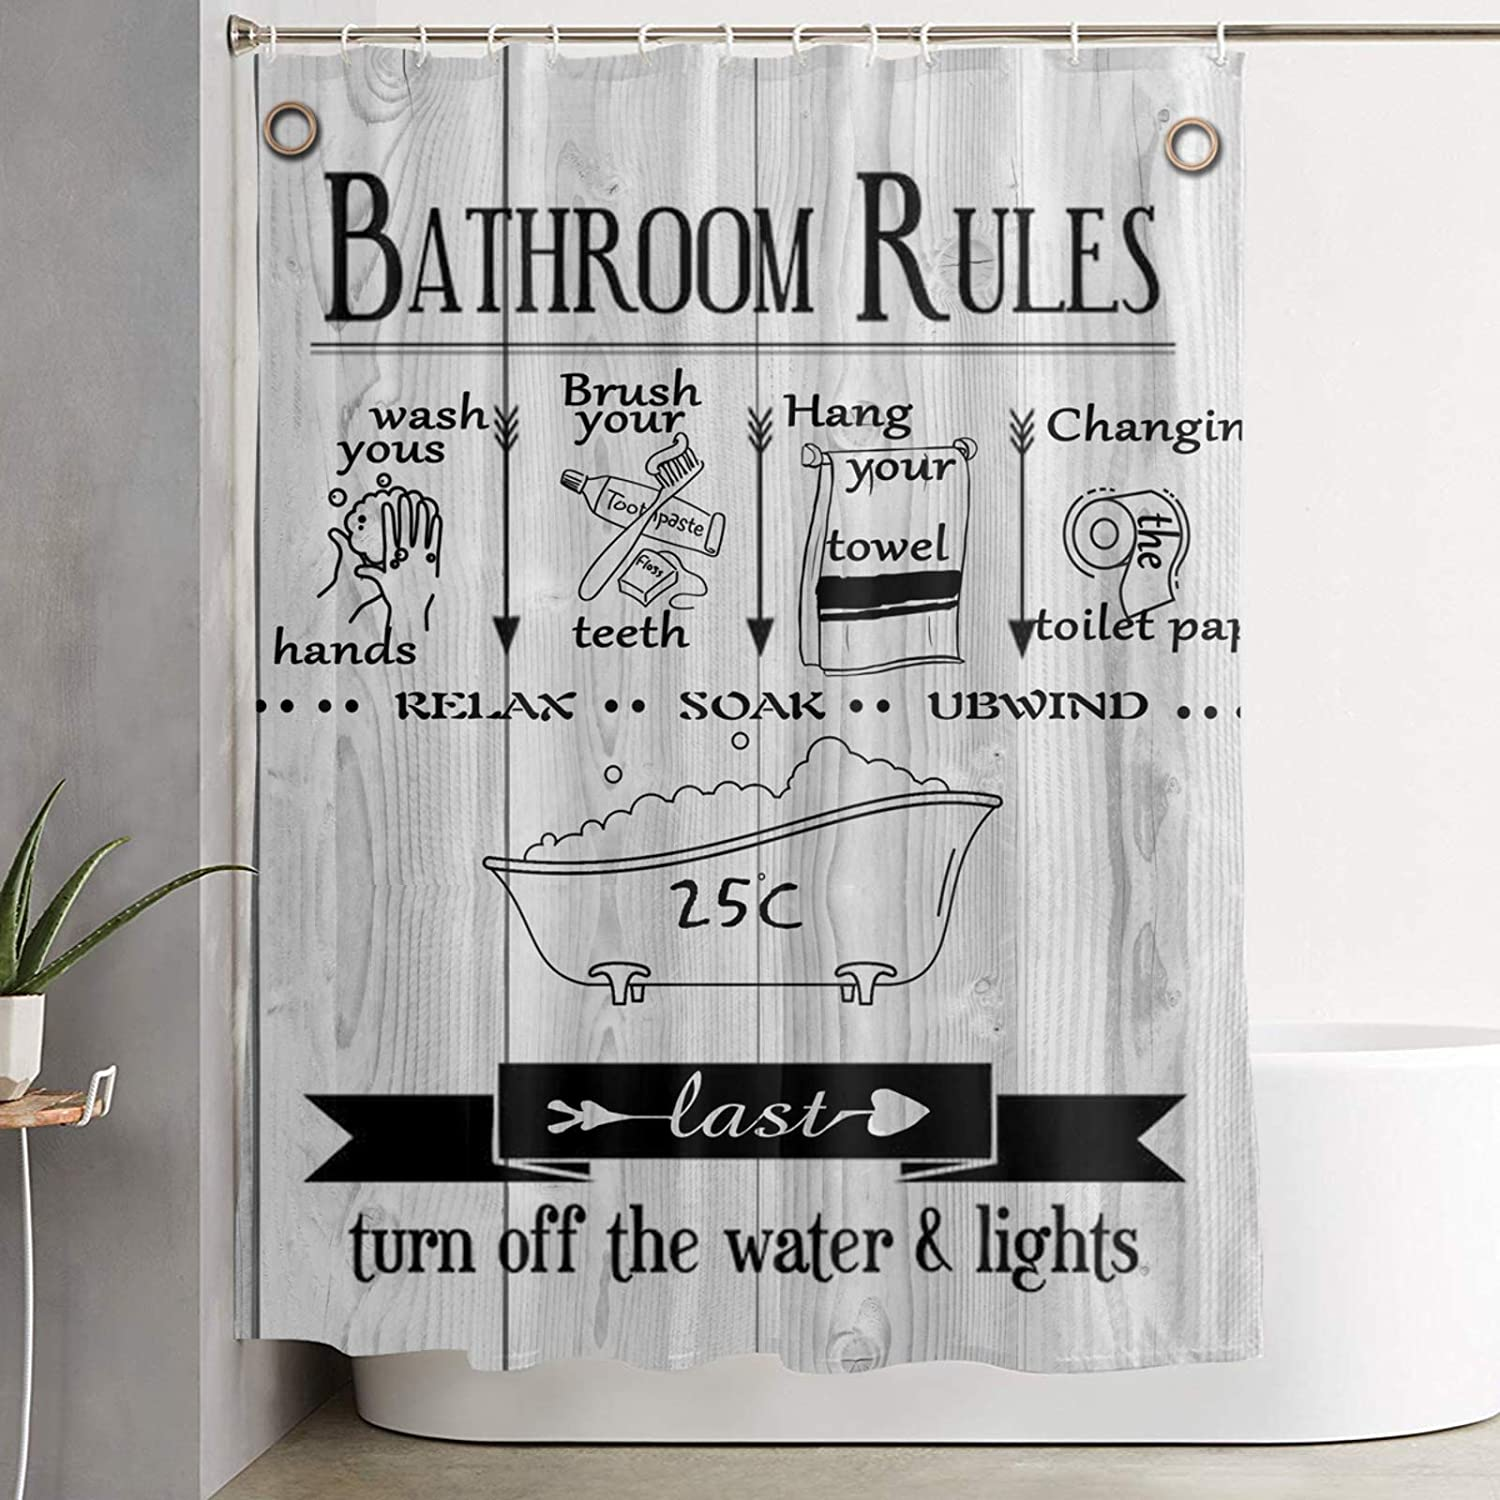 UOER Bathroon Rules New product Shower Limited Special Price Curtain Poly Grain Wood White Rustic